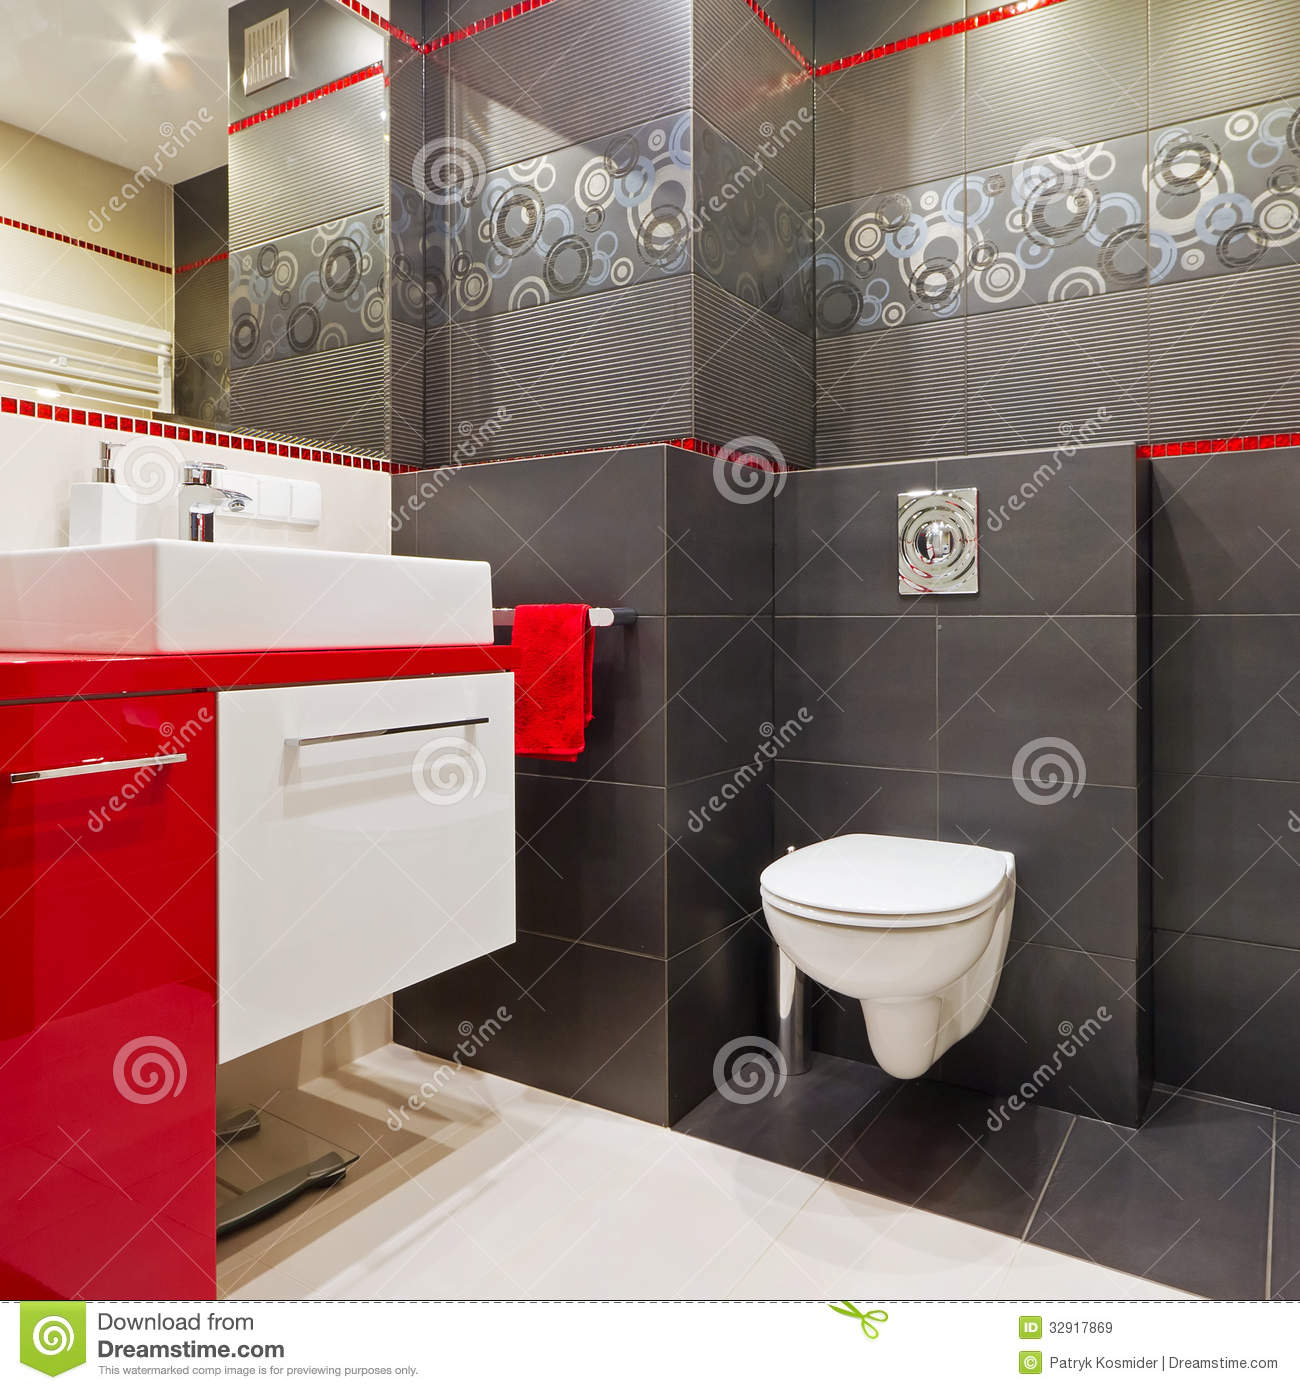 bathroom red and white modern bathroom interior stock image image of interior 16370